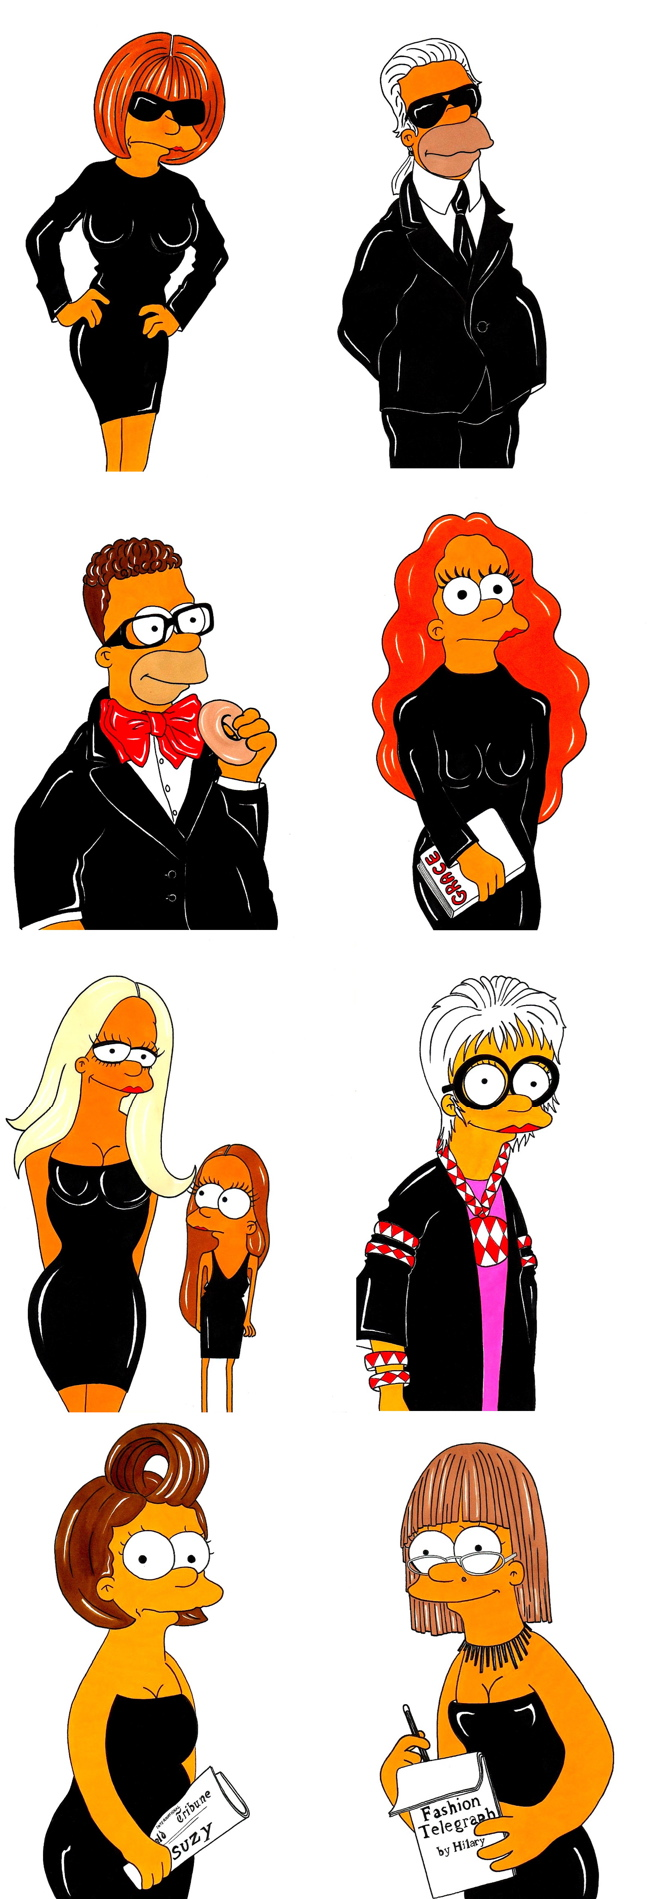 FASHION-SIMPSONS-by-Alexsandro-Palombo